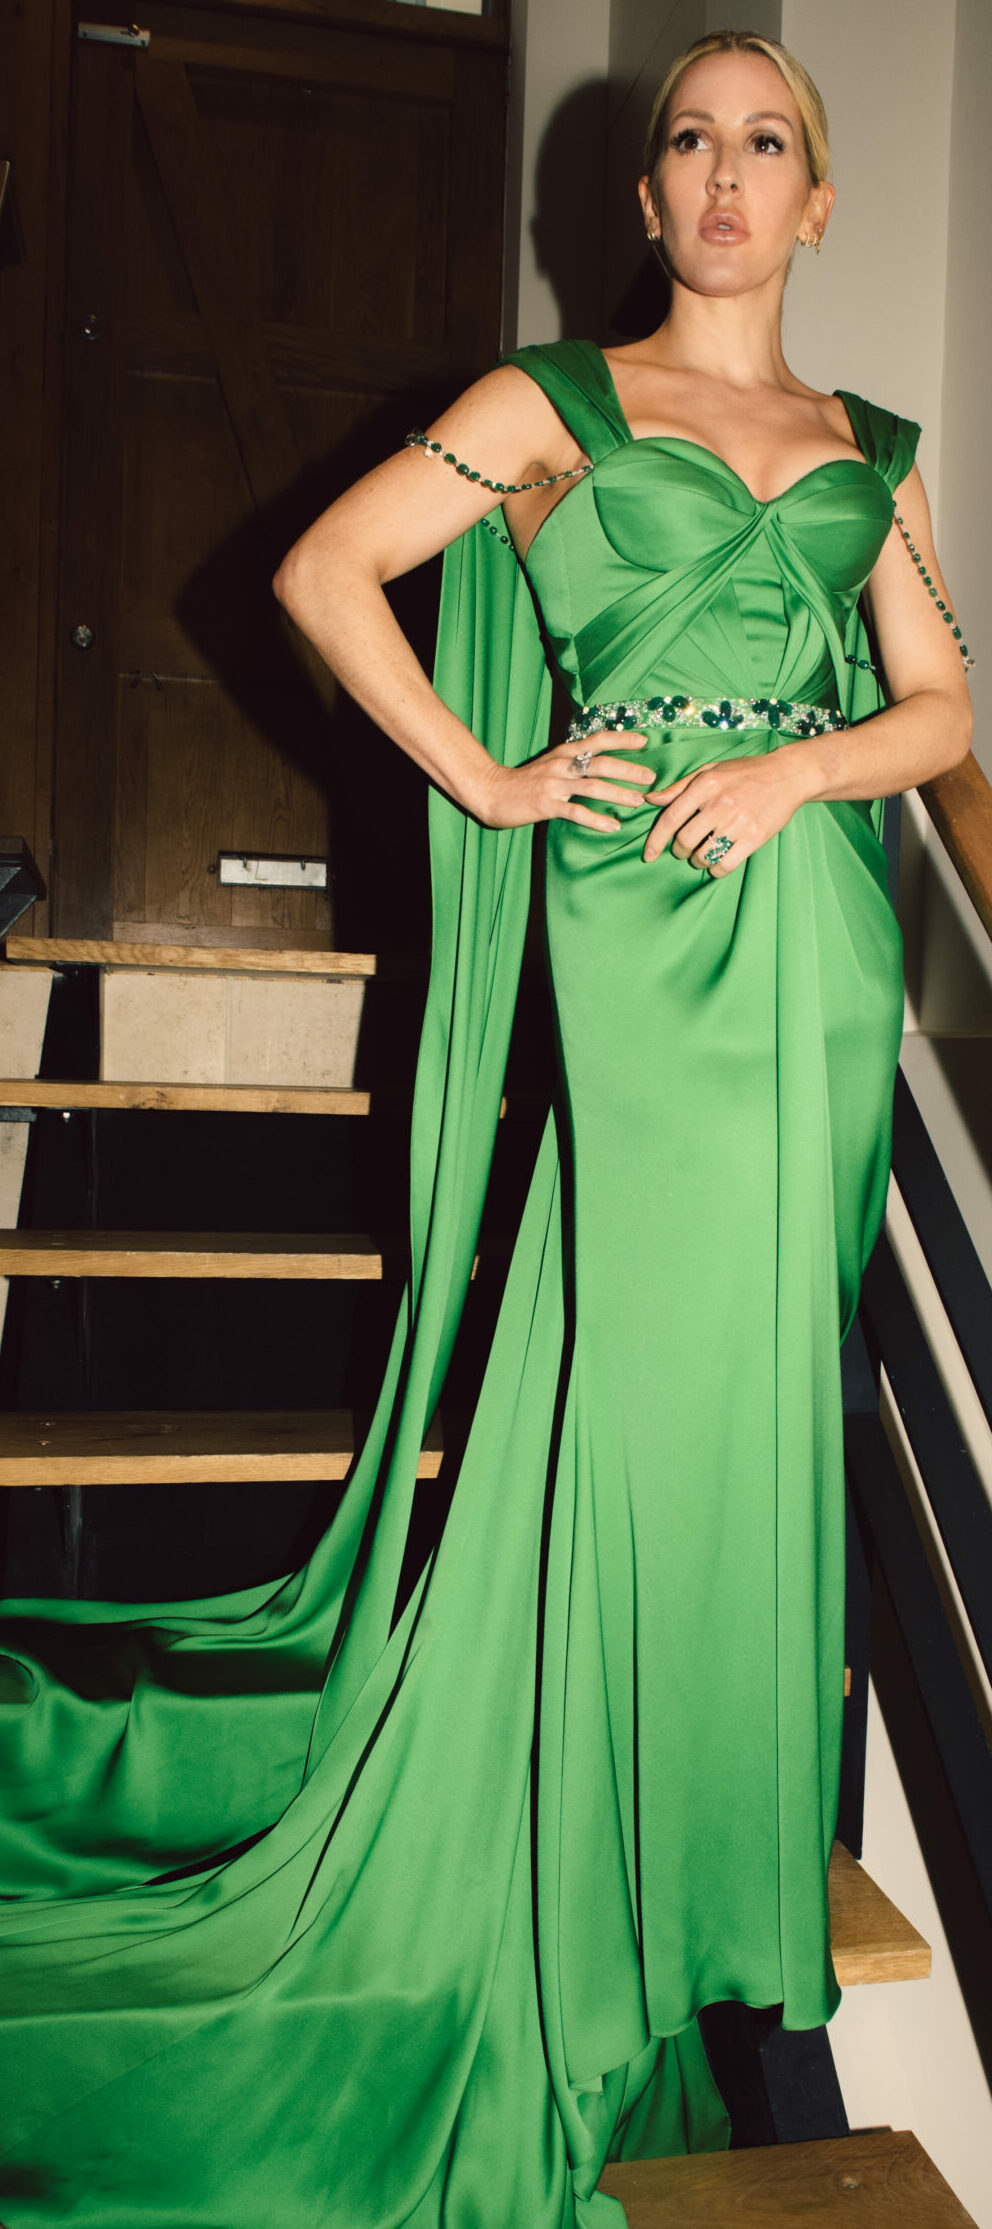 Ellie Goulding standing on stairs in dress green dress featuring Zambian emeralds from Ralph and Russo in Collaboration with Gemfields